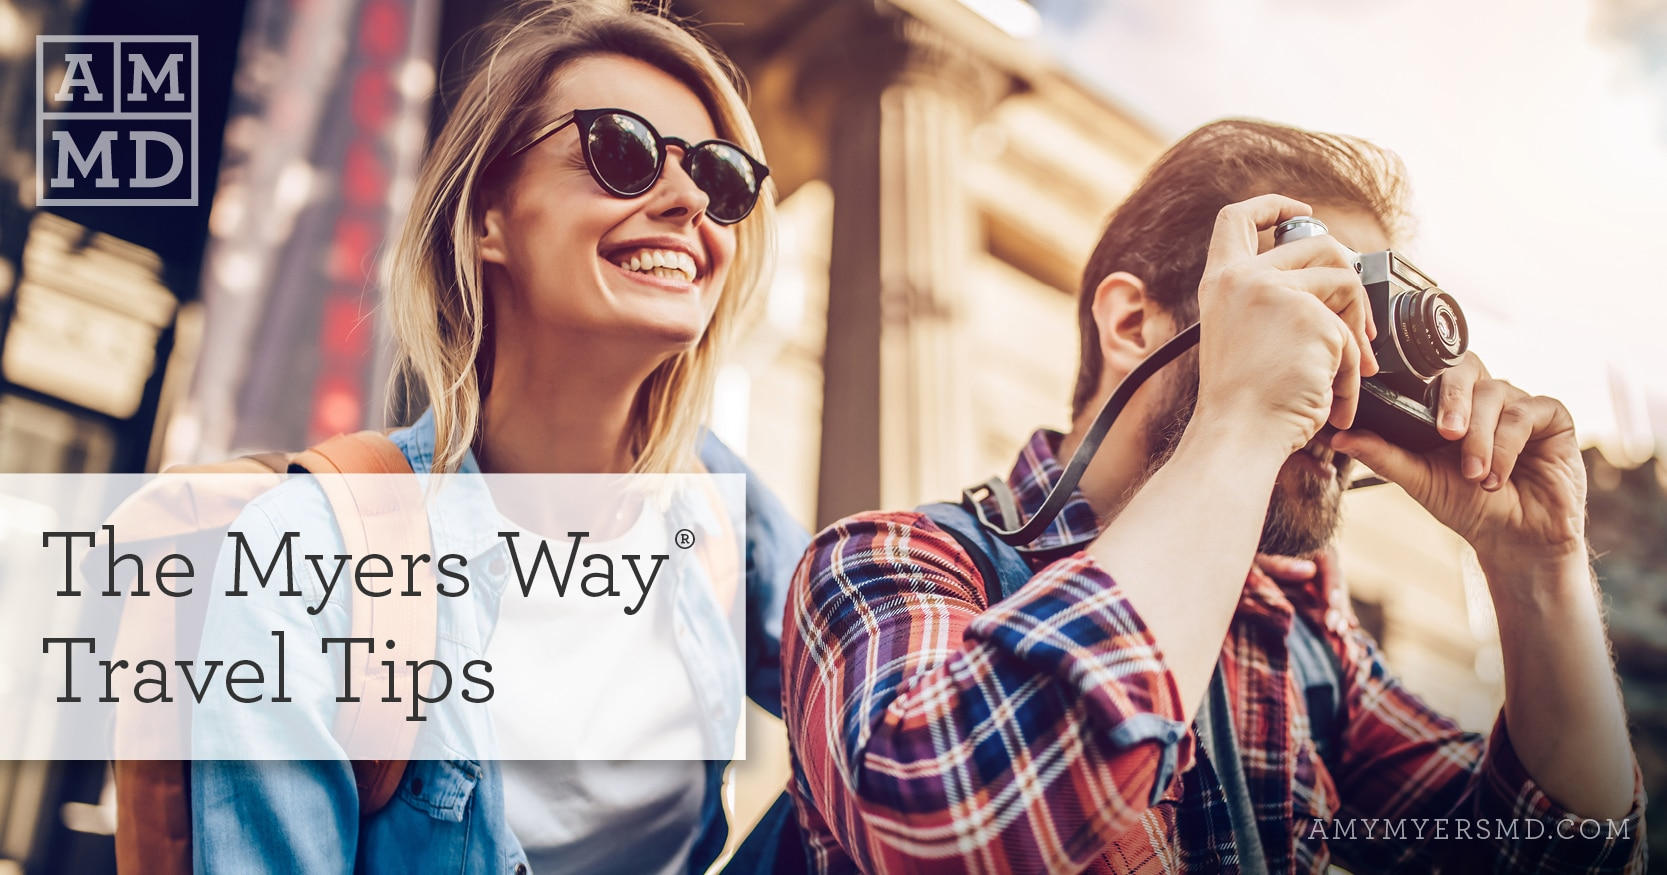 The Myers Way® Travel Tips - A Couple Traveling - Featured Image - Amy Myers MD